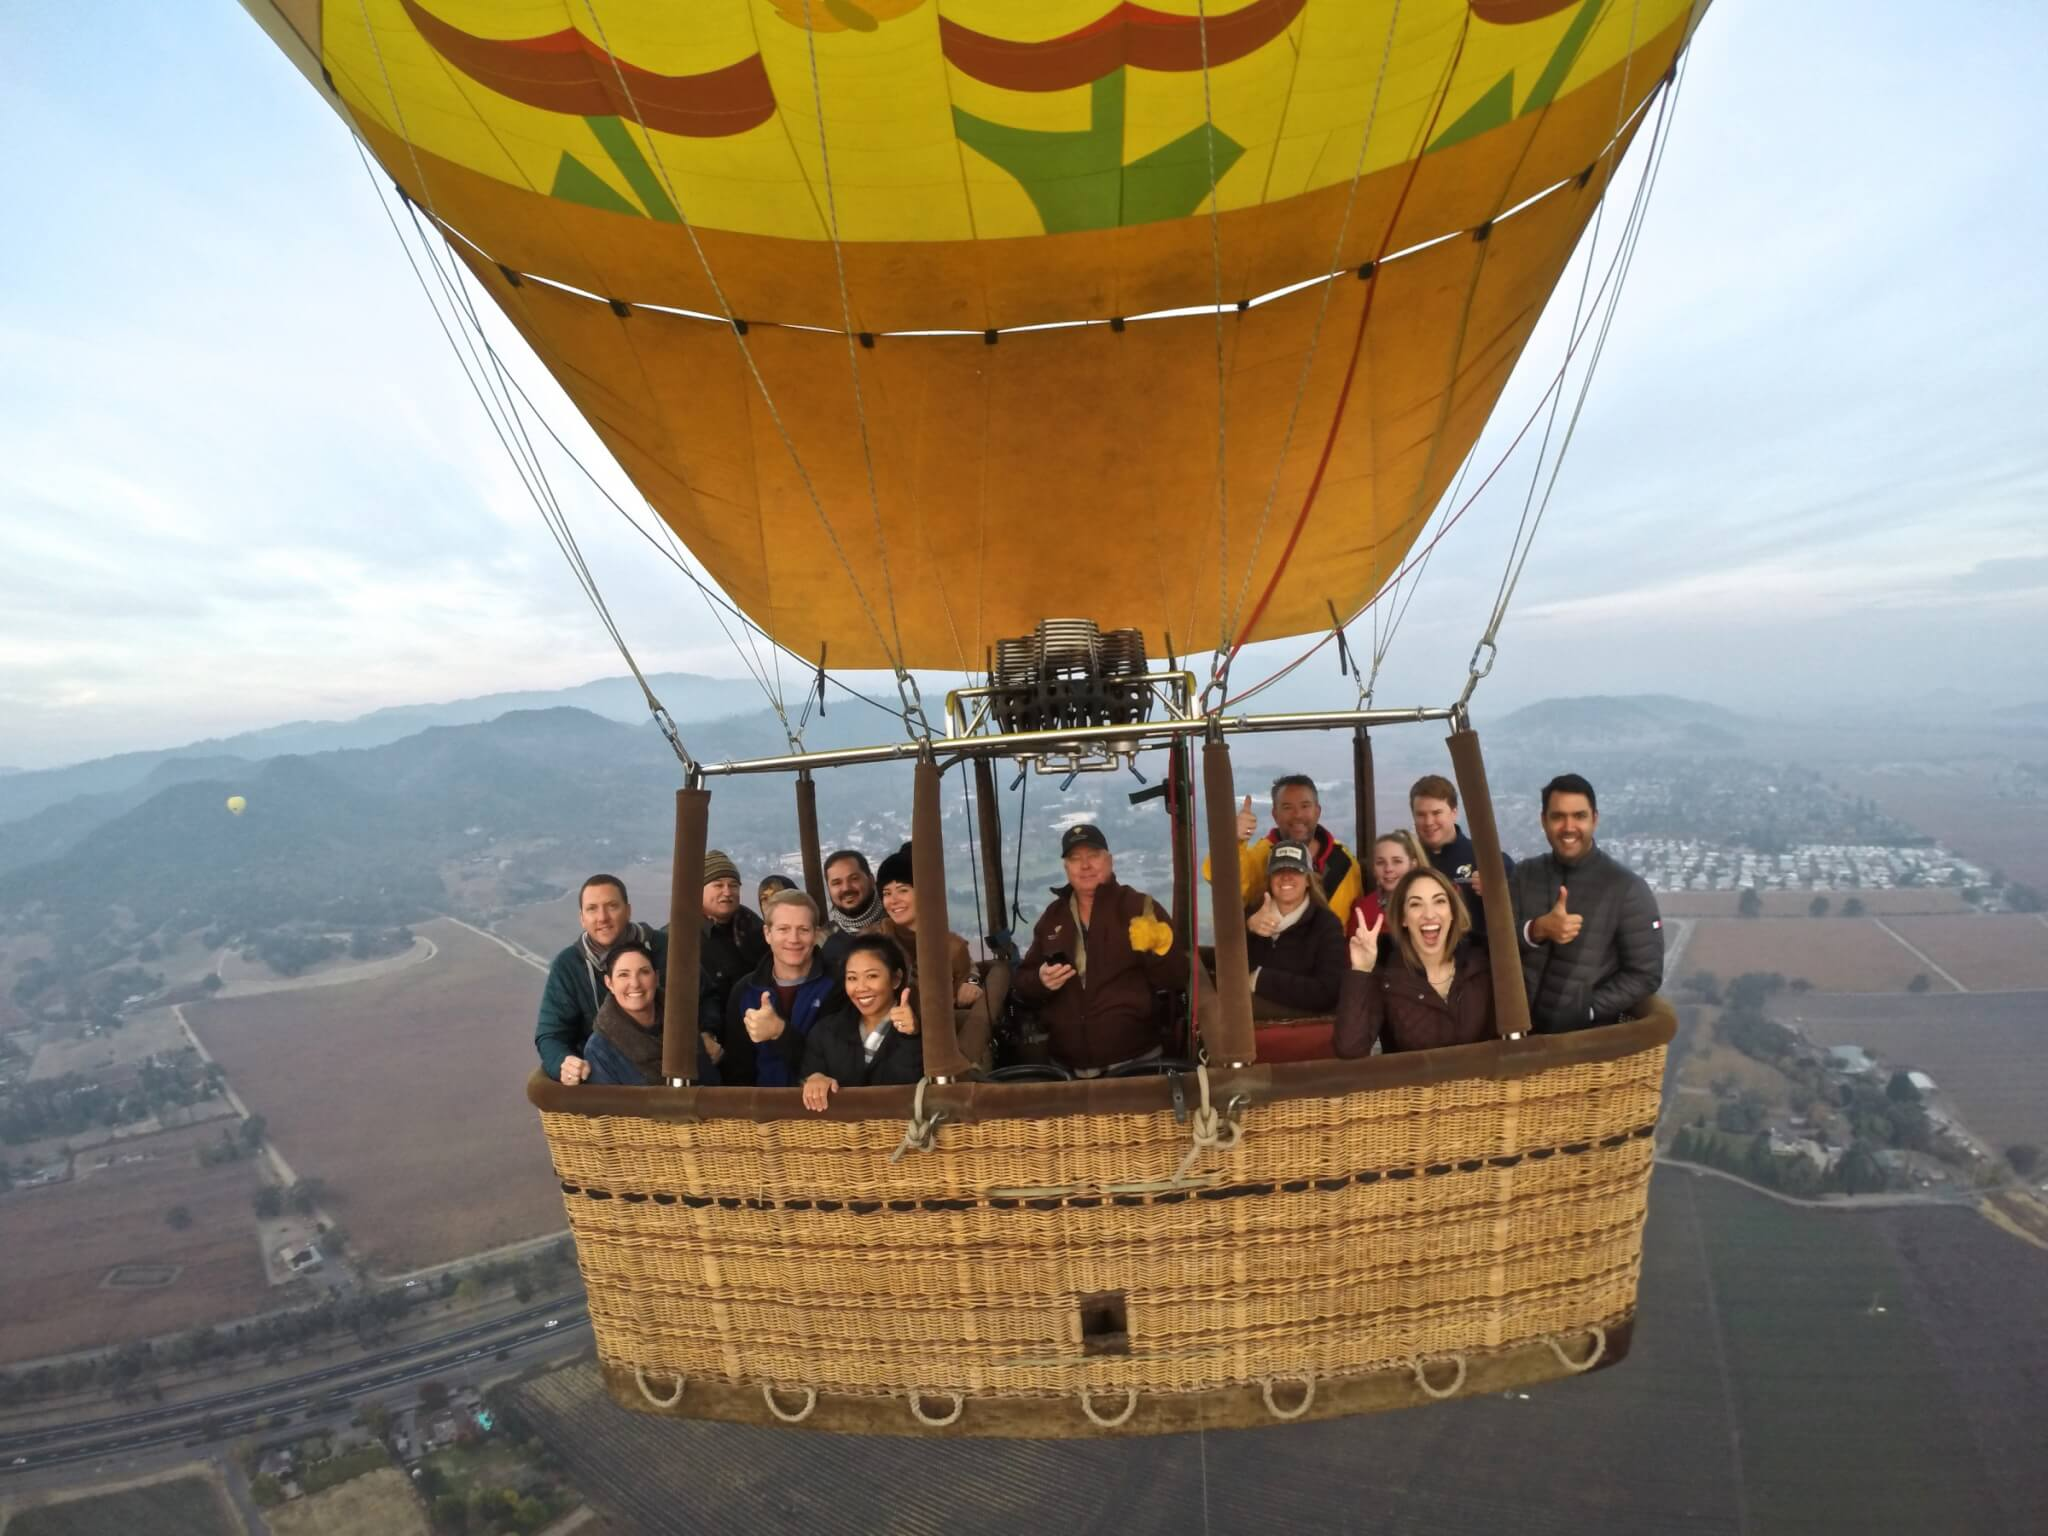 hot air balloon ride, hot air balloon, hot air balloon ride review, hot air baloon ride in napa, napa hot air balloon, things to do in napa